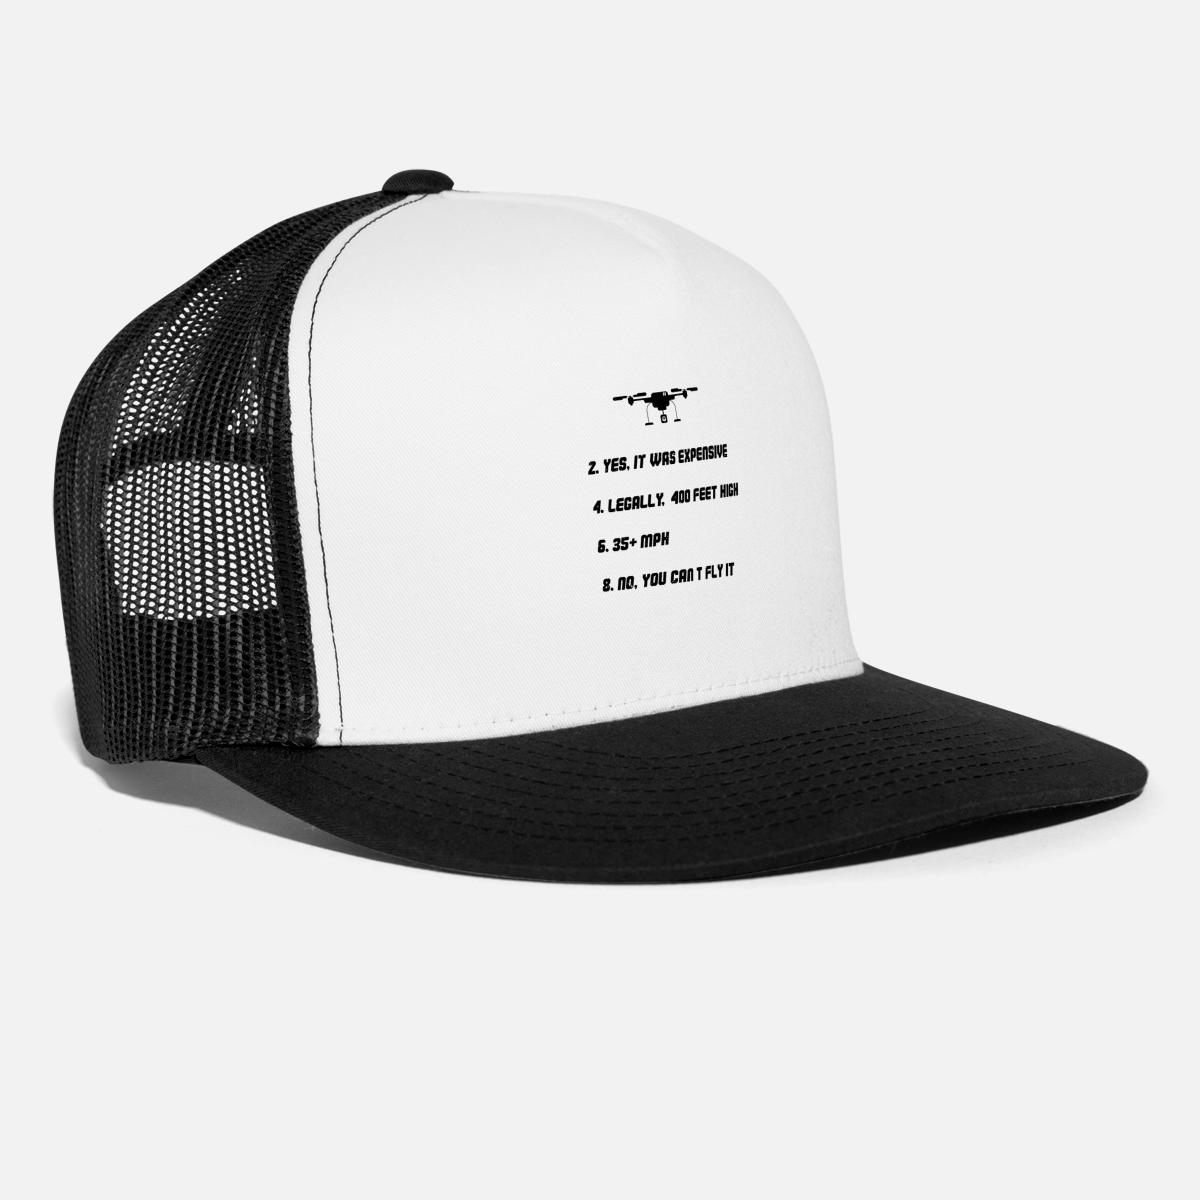 Funny Drone - Before You Ask Yes It Was Expensive Trucker Cap ... 85d16f949e3